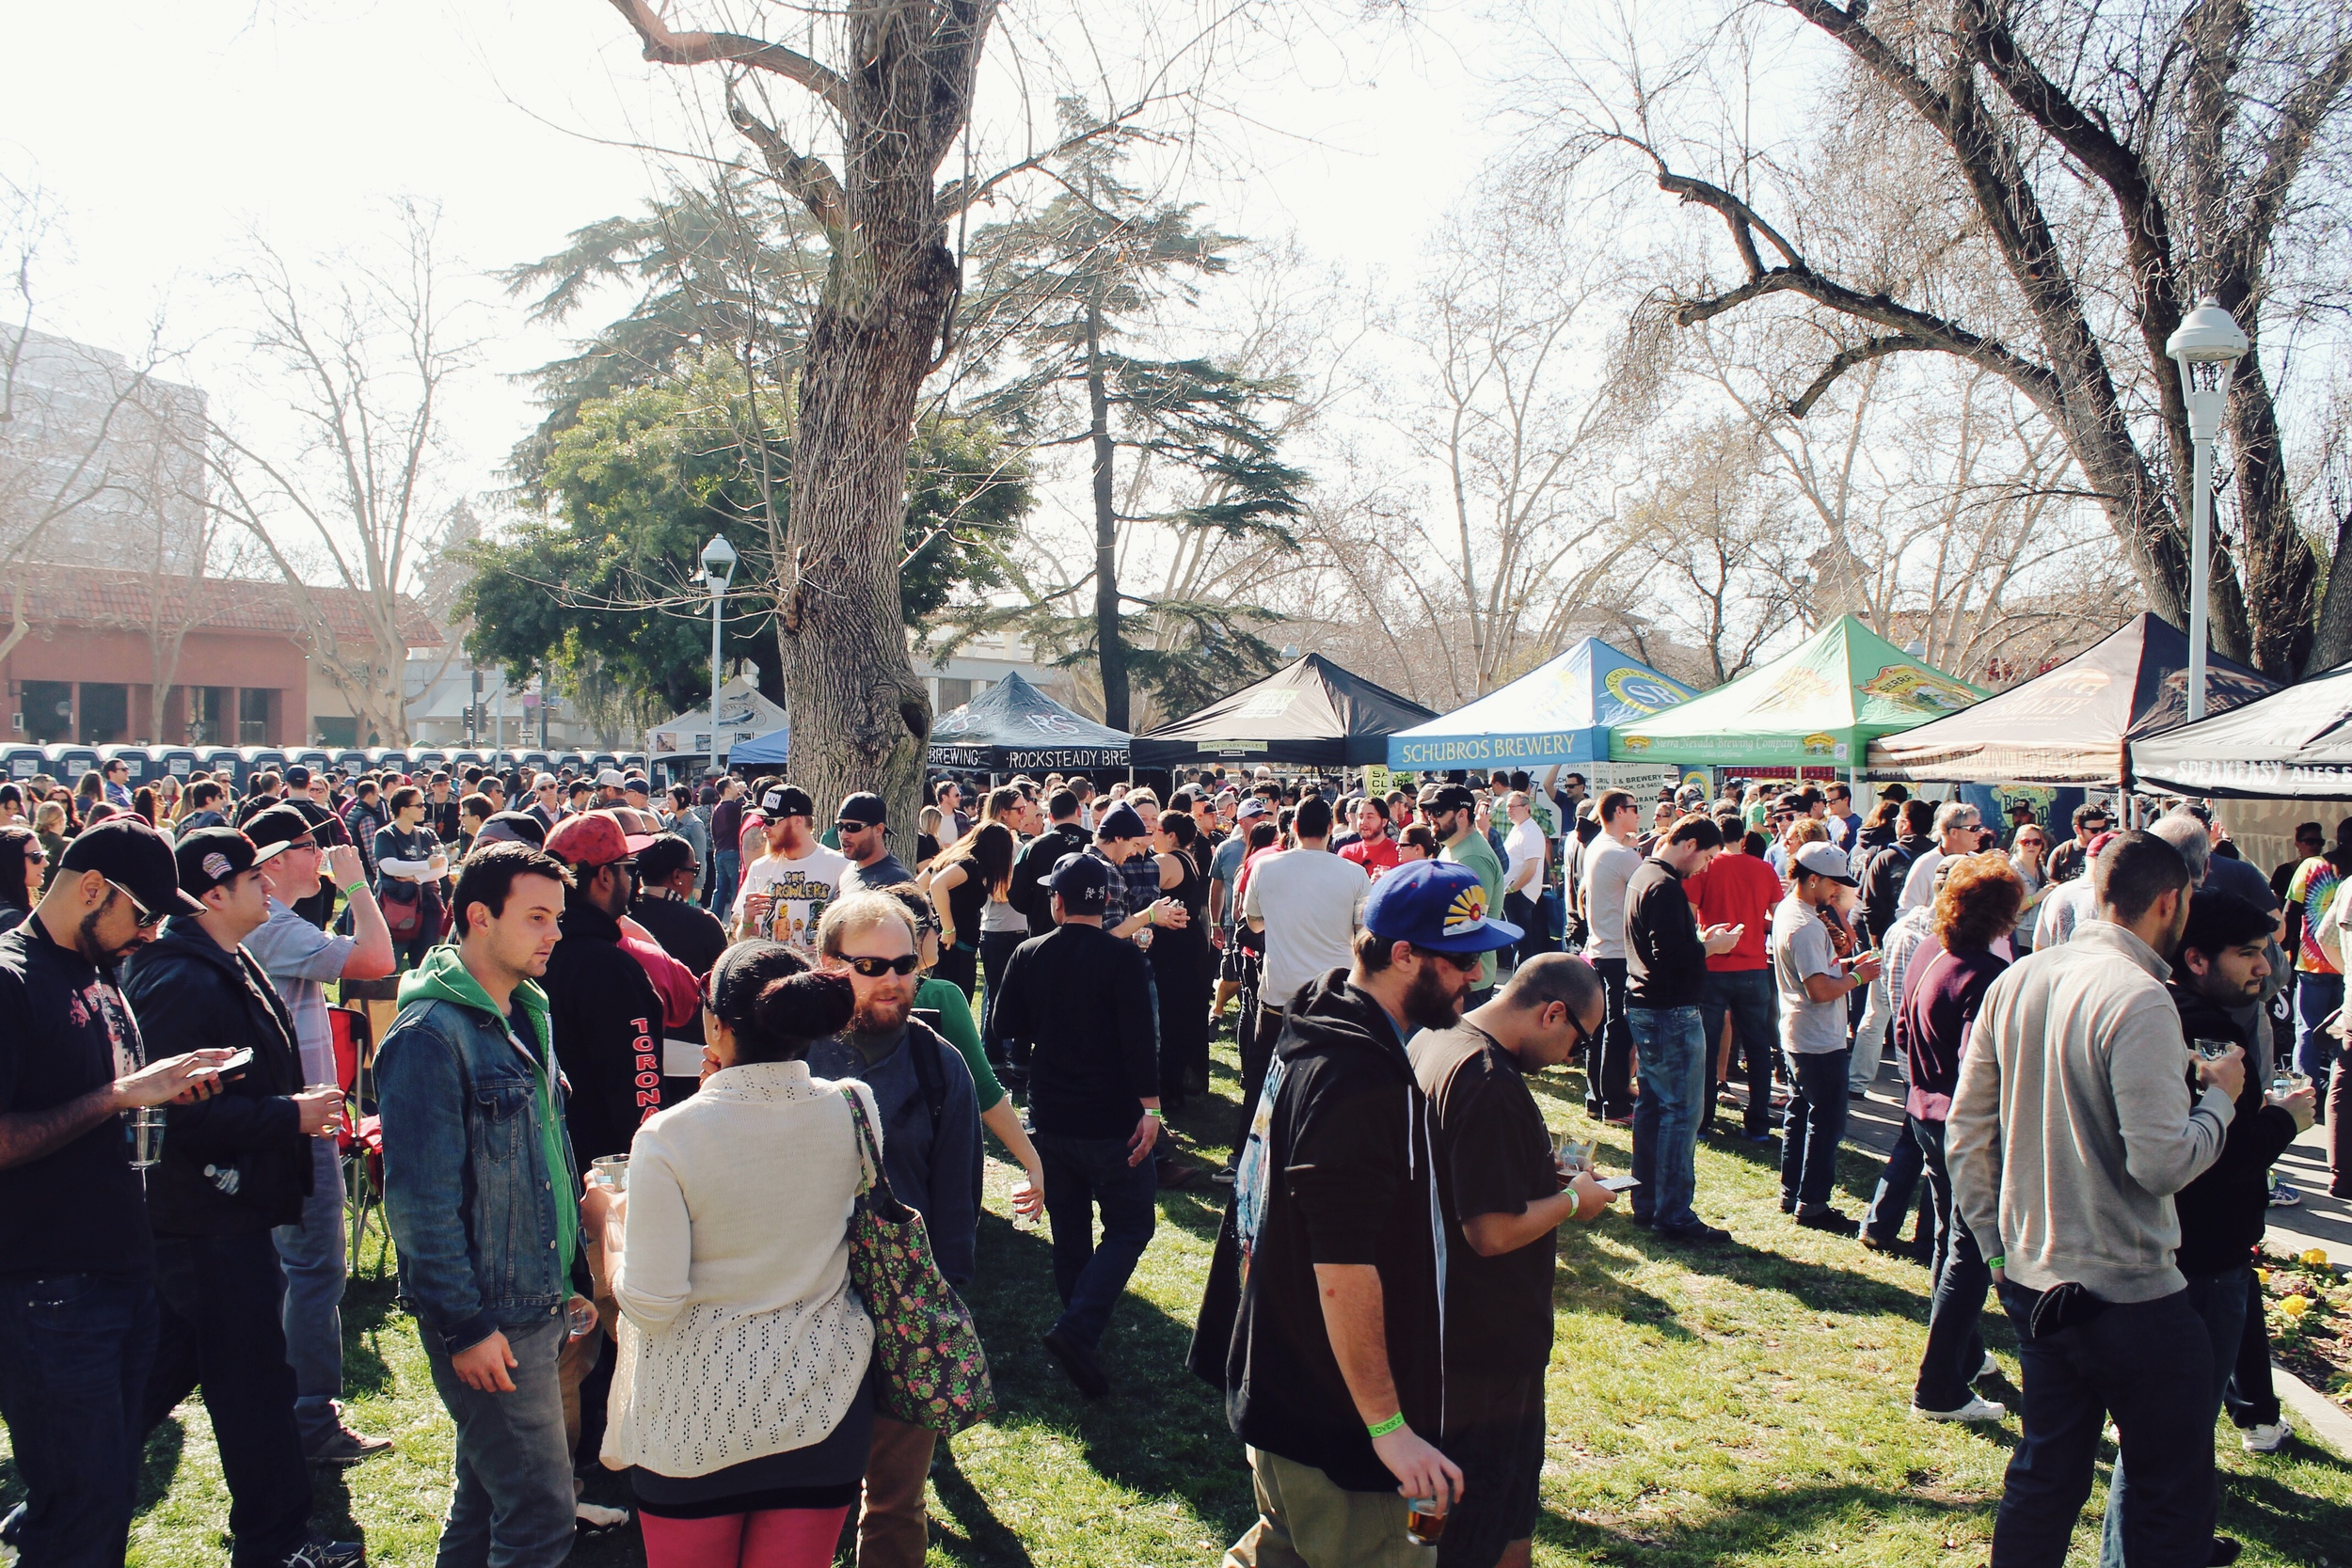 Saturday, January 24, 2015 Winter Brew's Festival in Concord, CA